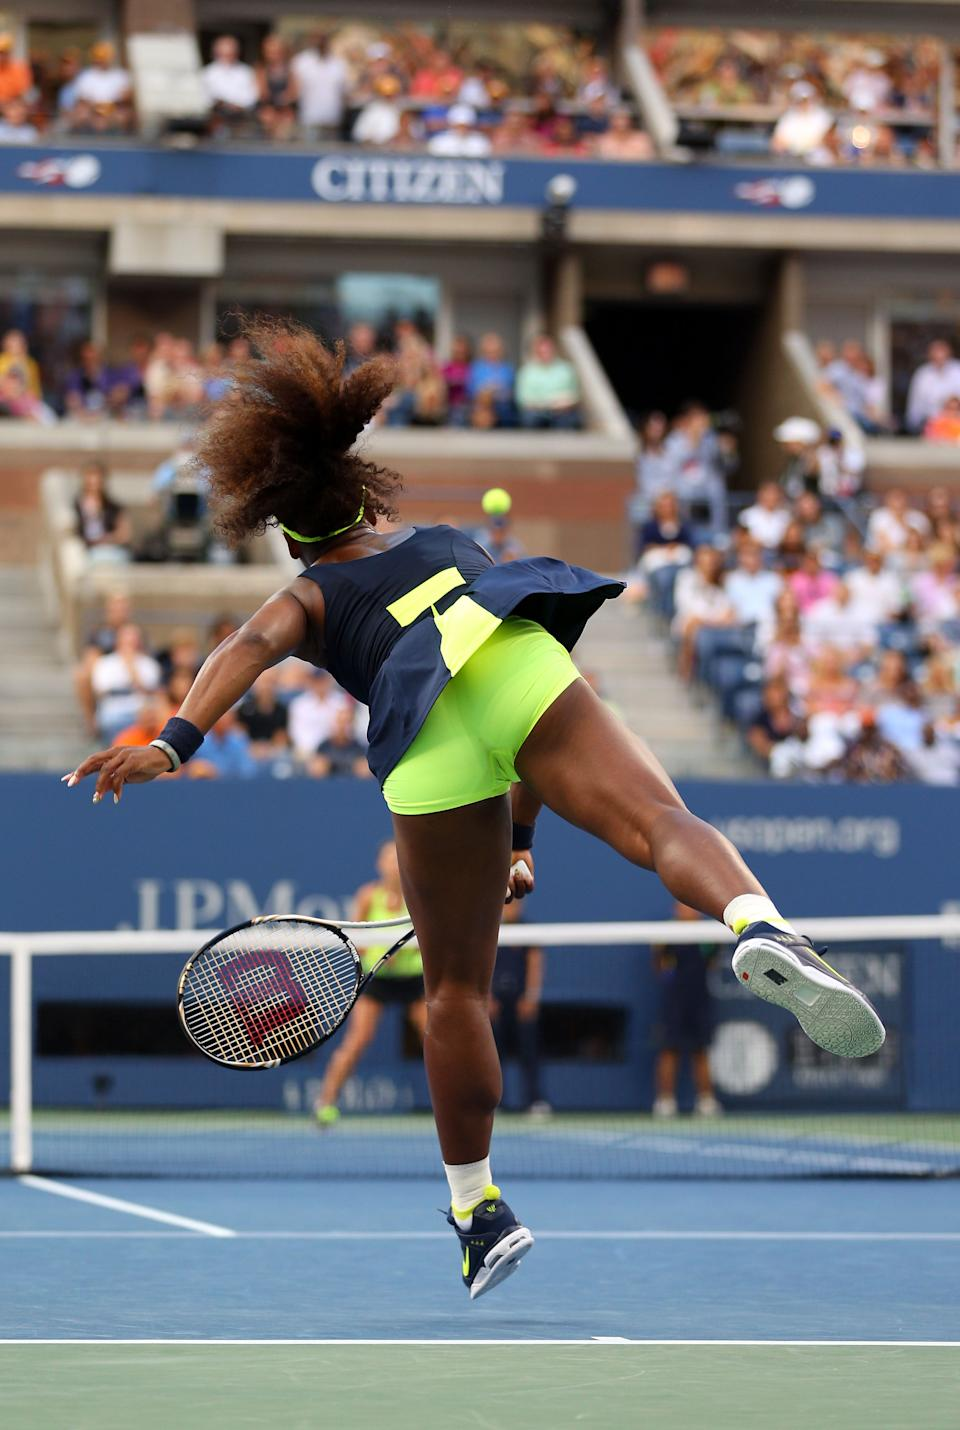 Serena Williams of the United States serves during the women's singles final match against Victoria Azarenka of Belarus on Day Fourteen of the 2012 US Open at USTA Billie Jean King National Tennis Center on September 9, 2012 in the Flushing neighborhood of the Queens borough of New York City. (Photo by Cameron Spencer/Getty Images)